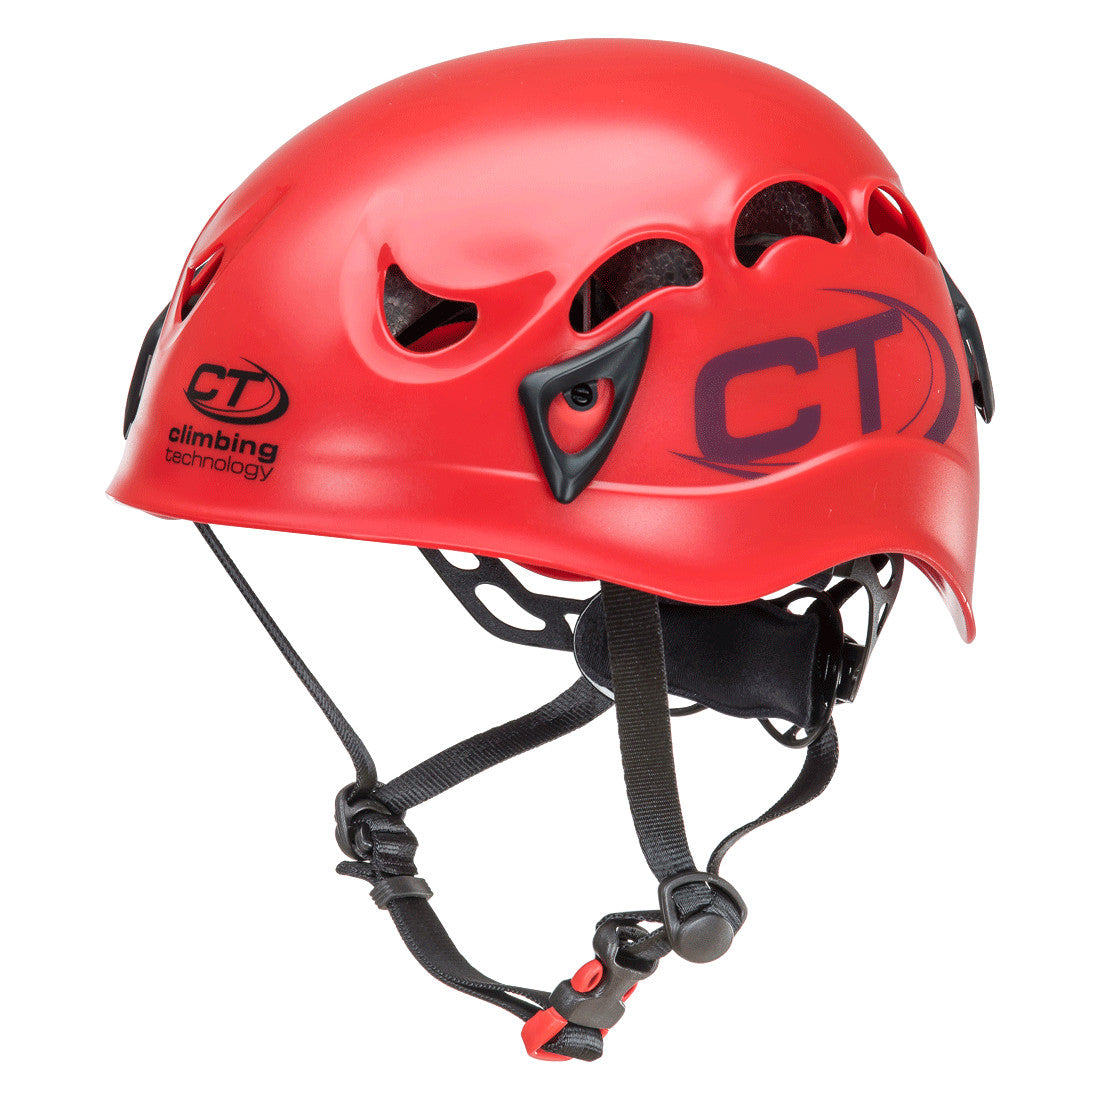 Climbing Technology Galaxy climbing helmet, in red colour